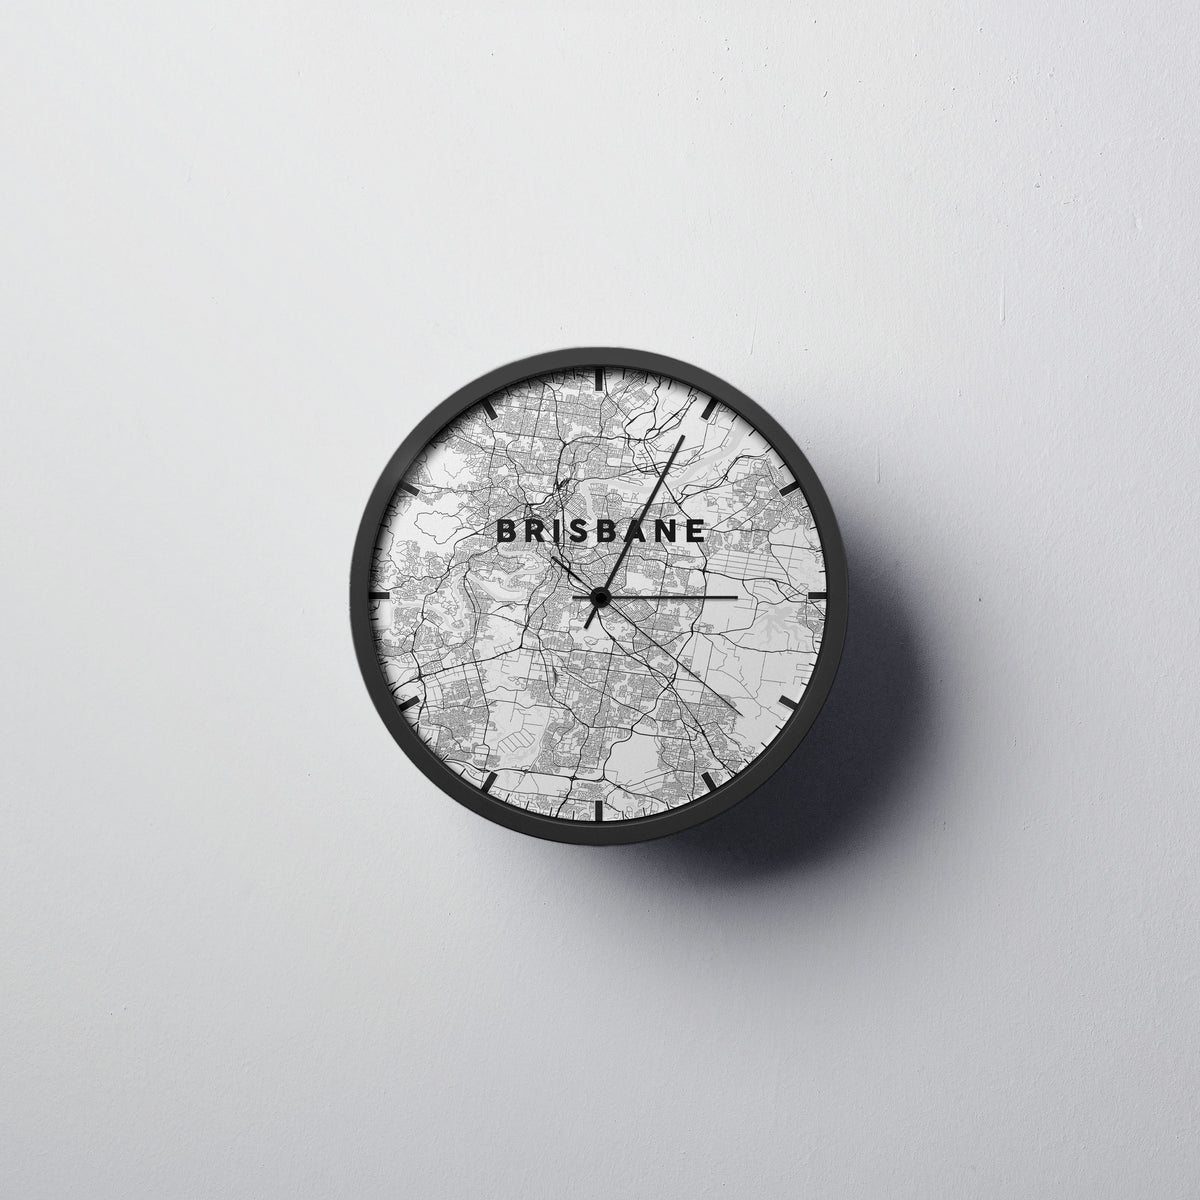 Brisbane Wall Clock - Point Two Design